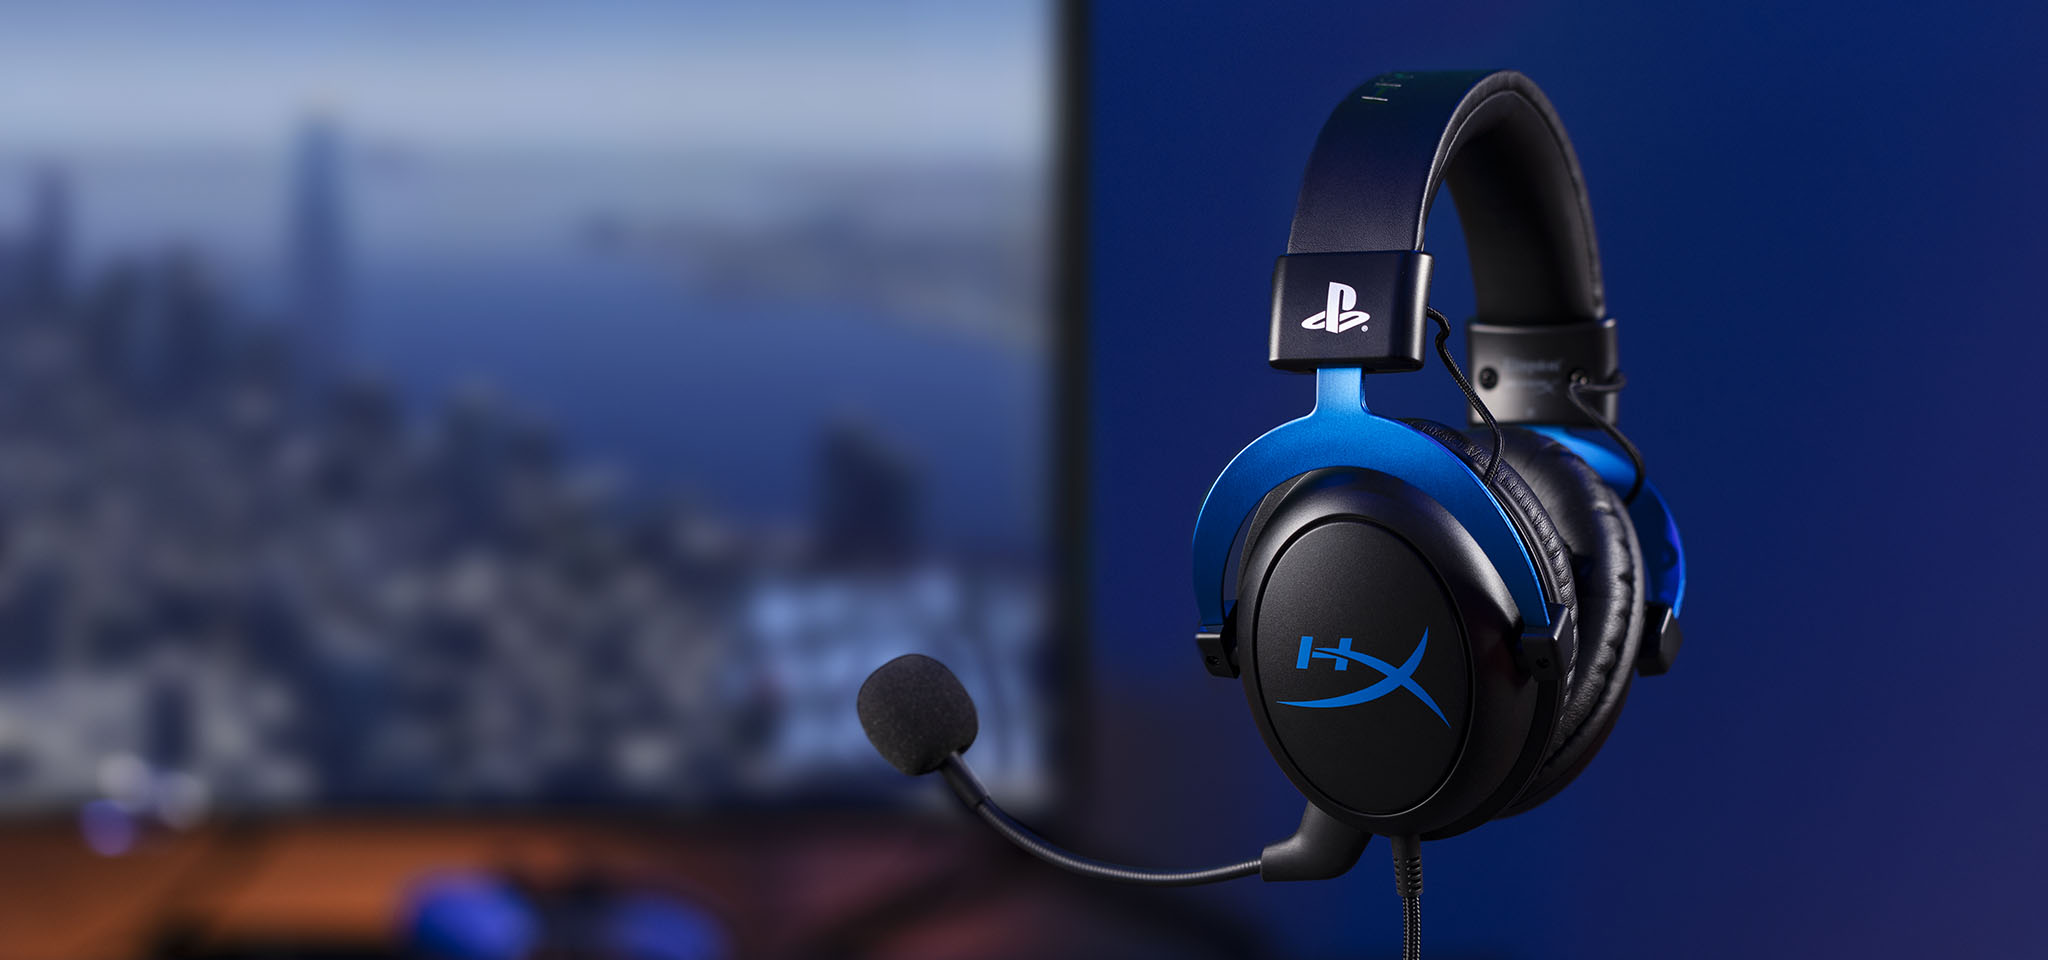 Cloud Gaming Headset for PS4